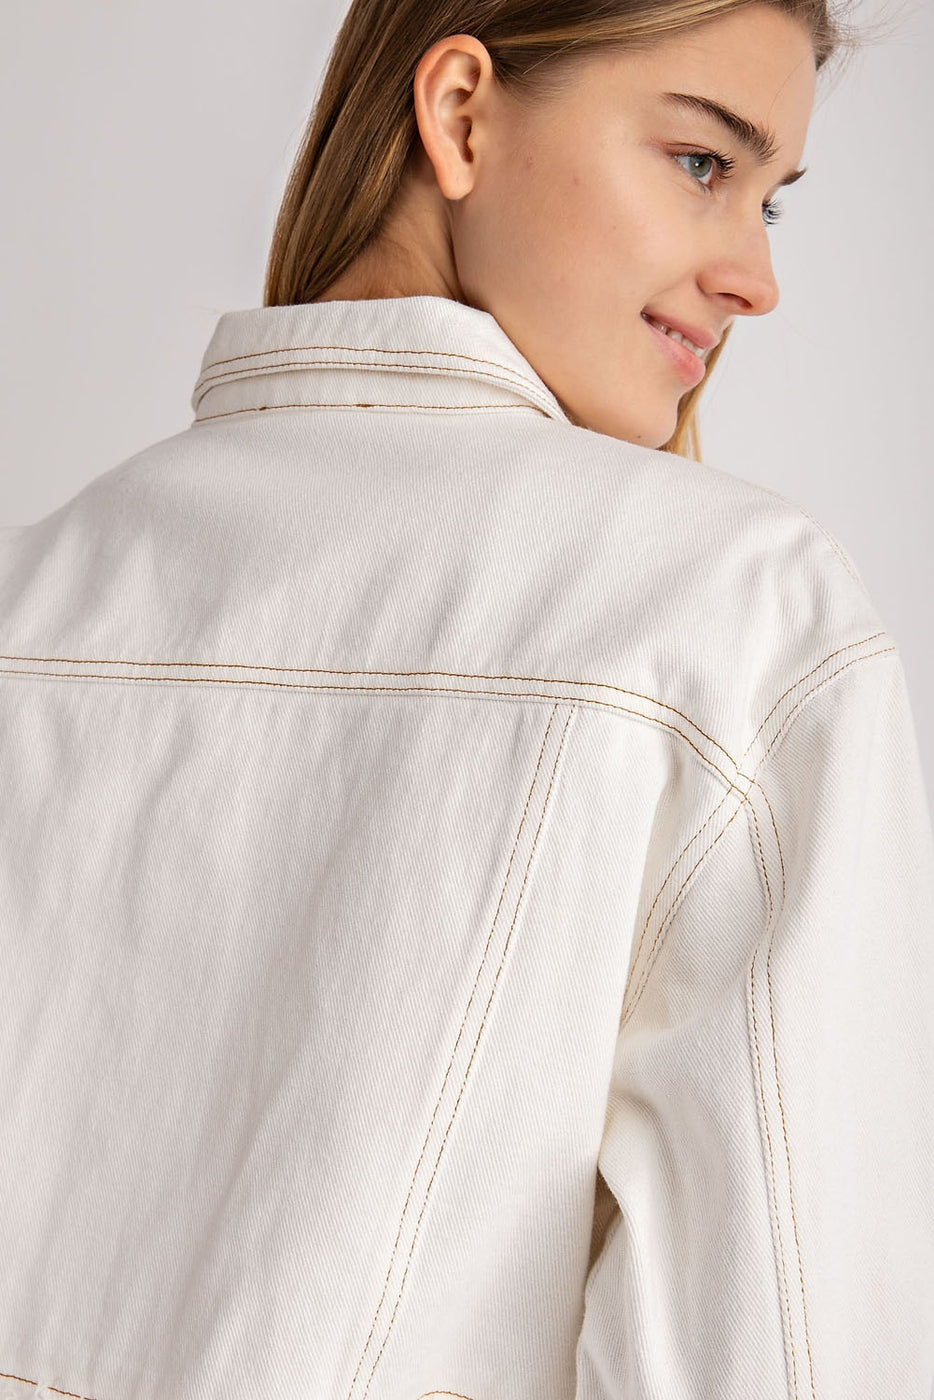 Frayed Button Up Jacket In Ivory Siin Bees